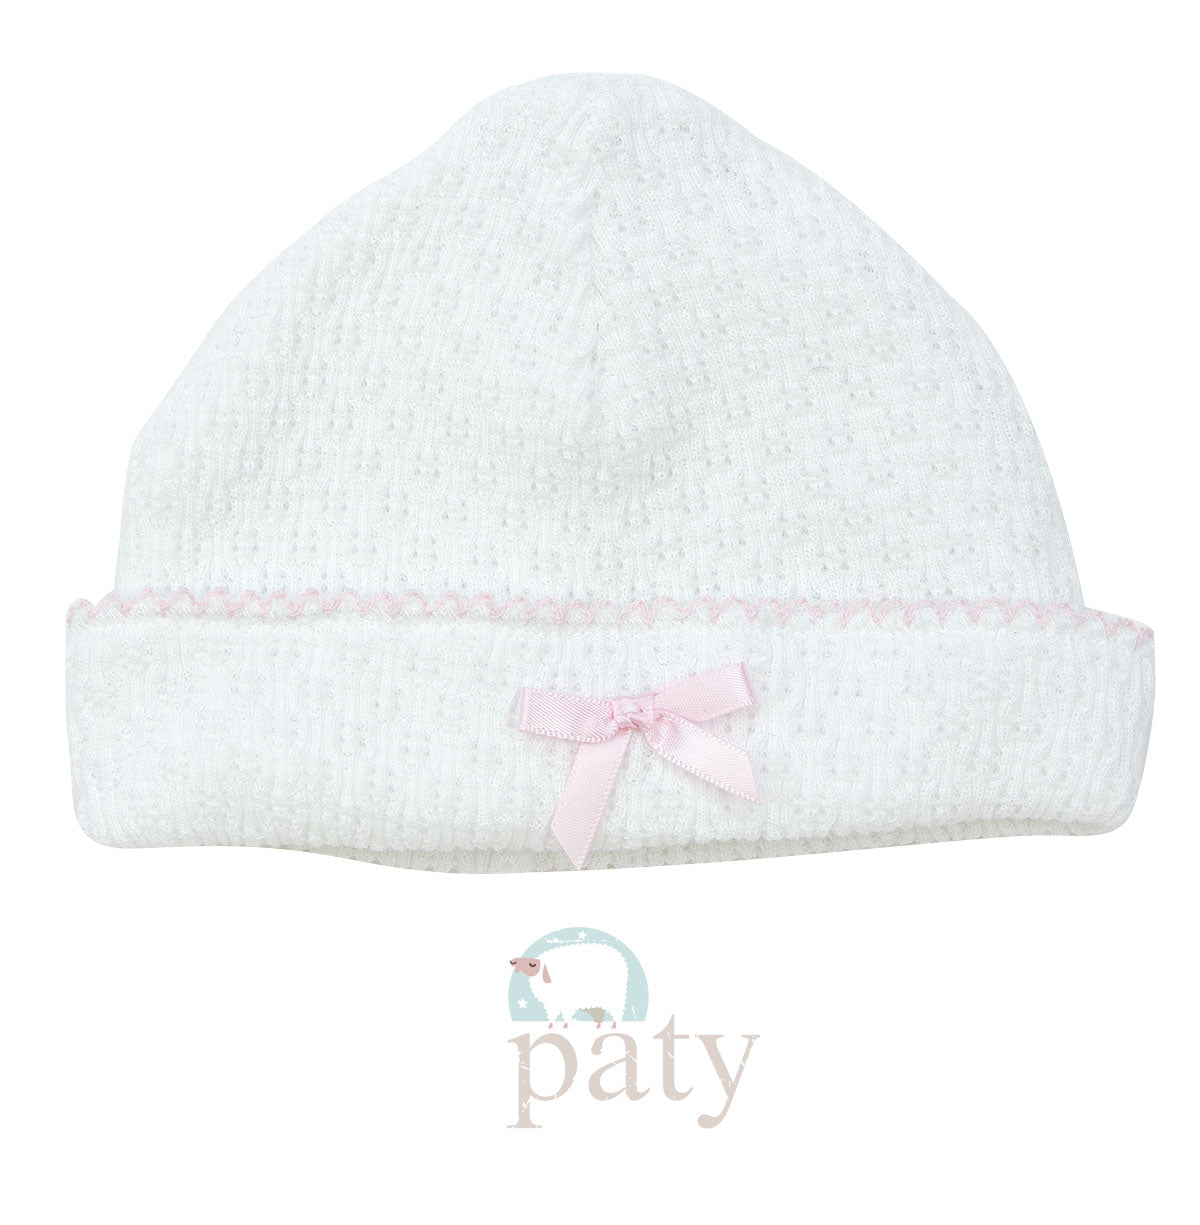 KNIT SAILOR CAP WITH BOW - PINK - Made by McNamara